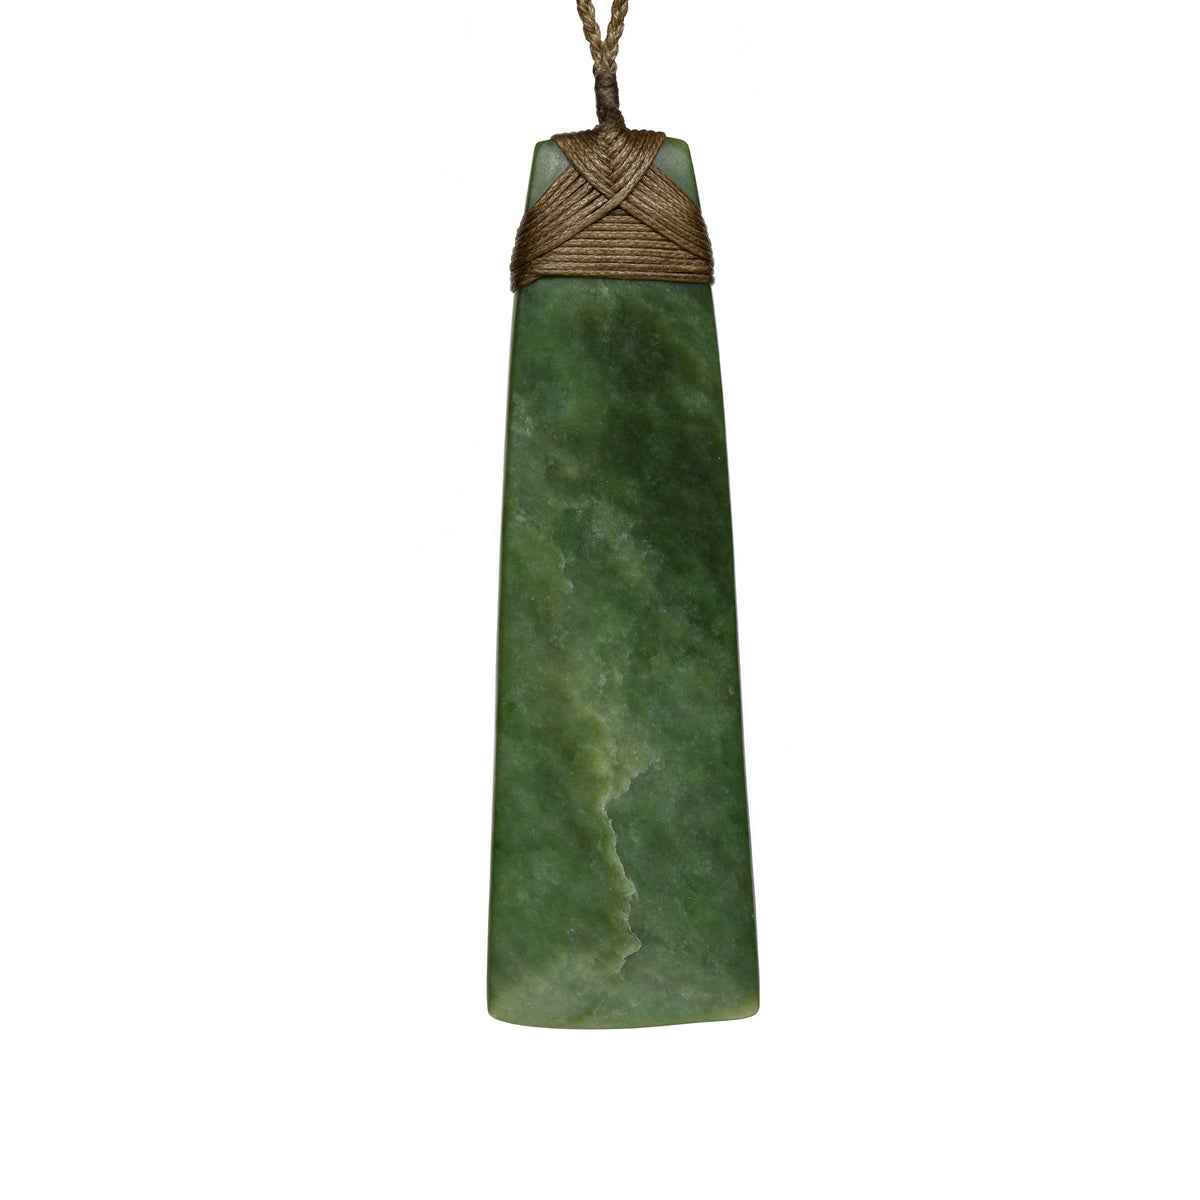 115mm x 30mm / New Zealand Pounamu // RMTO798P